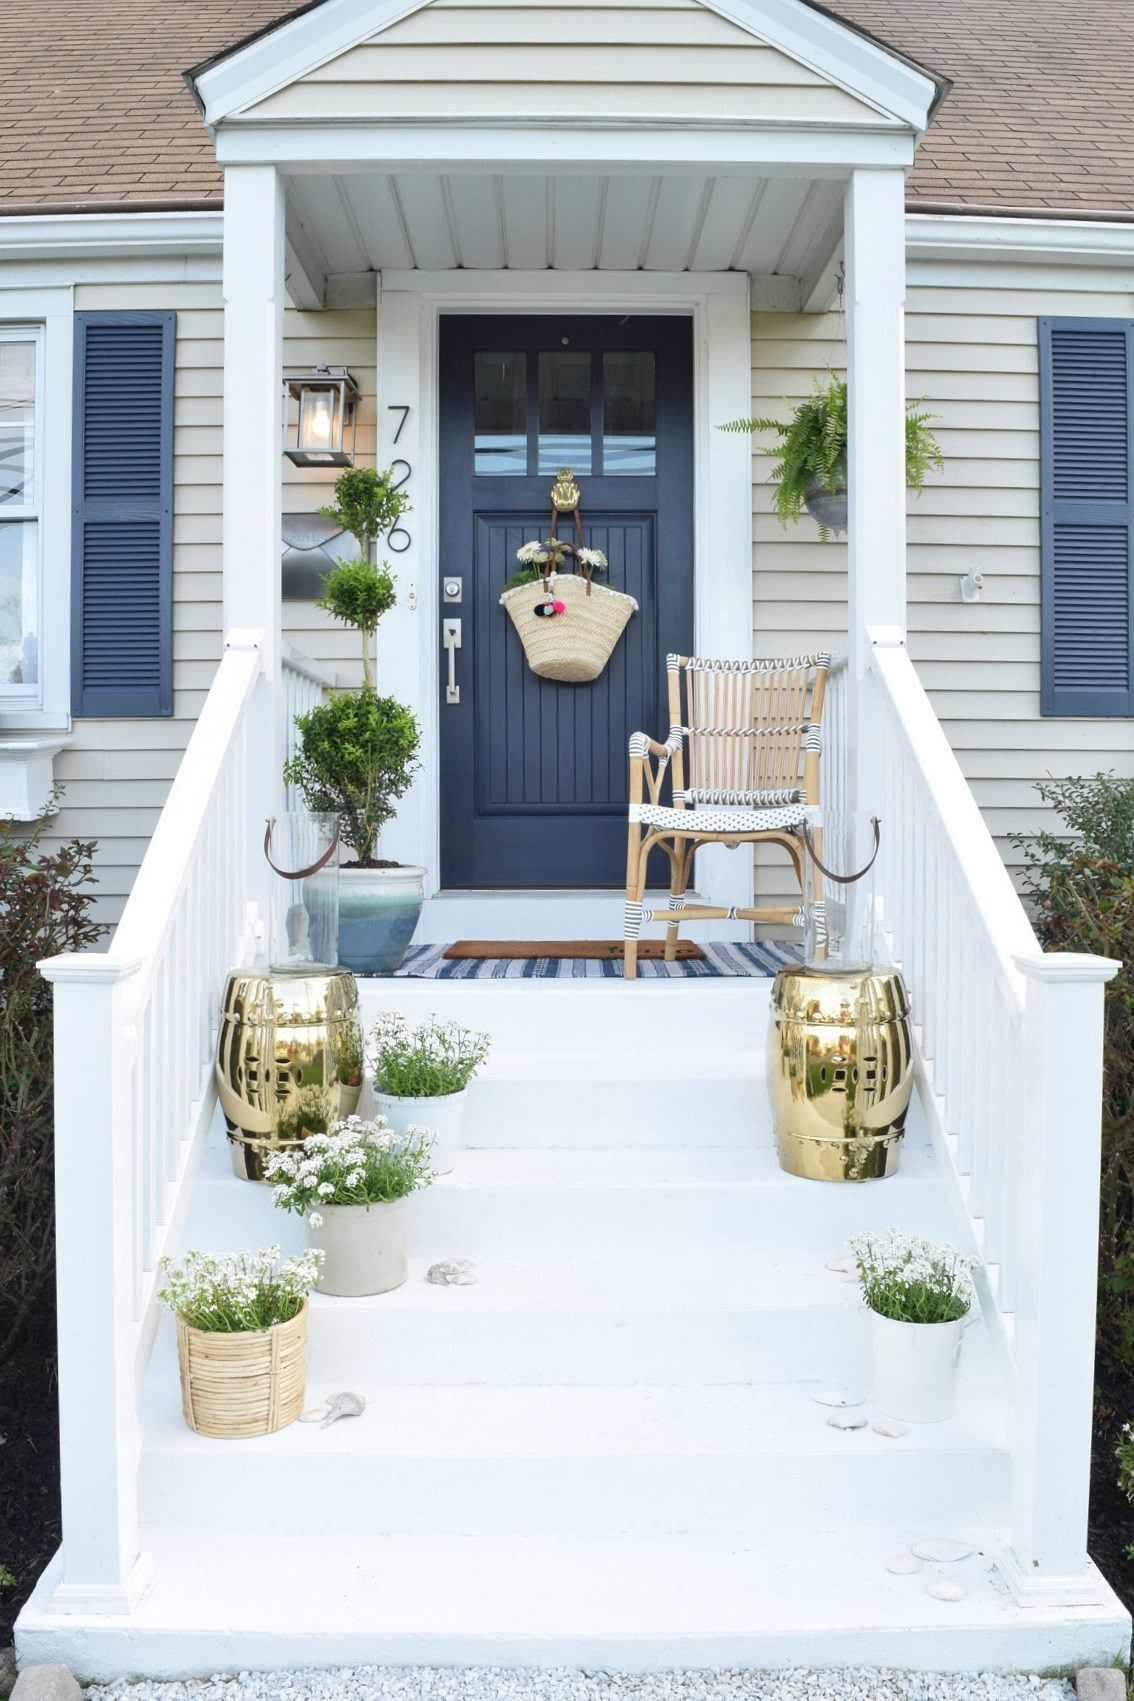 Themed front porch